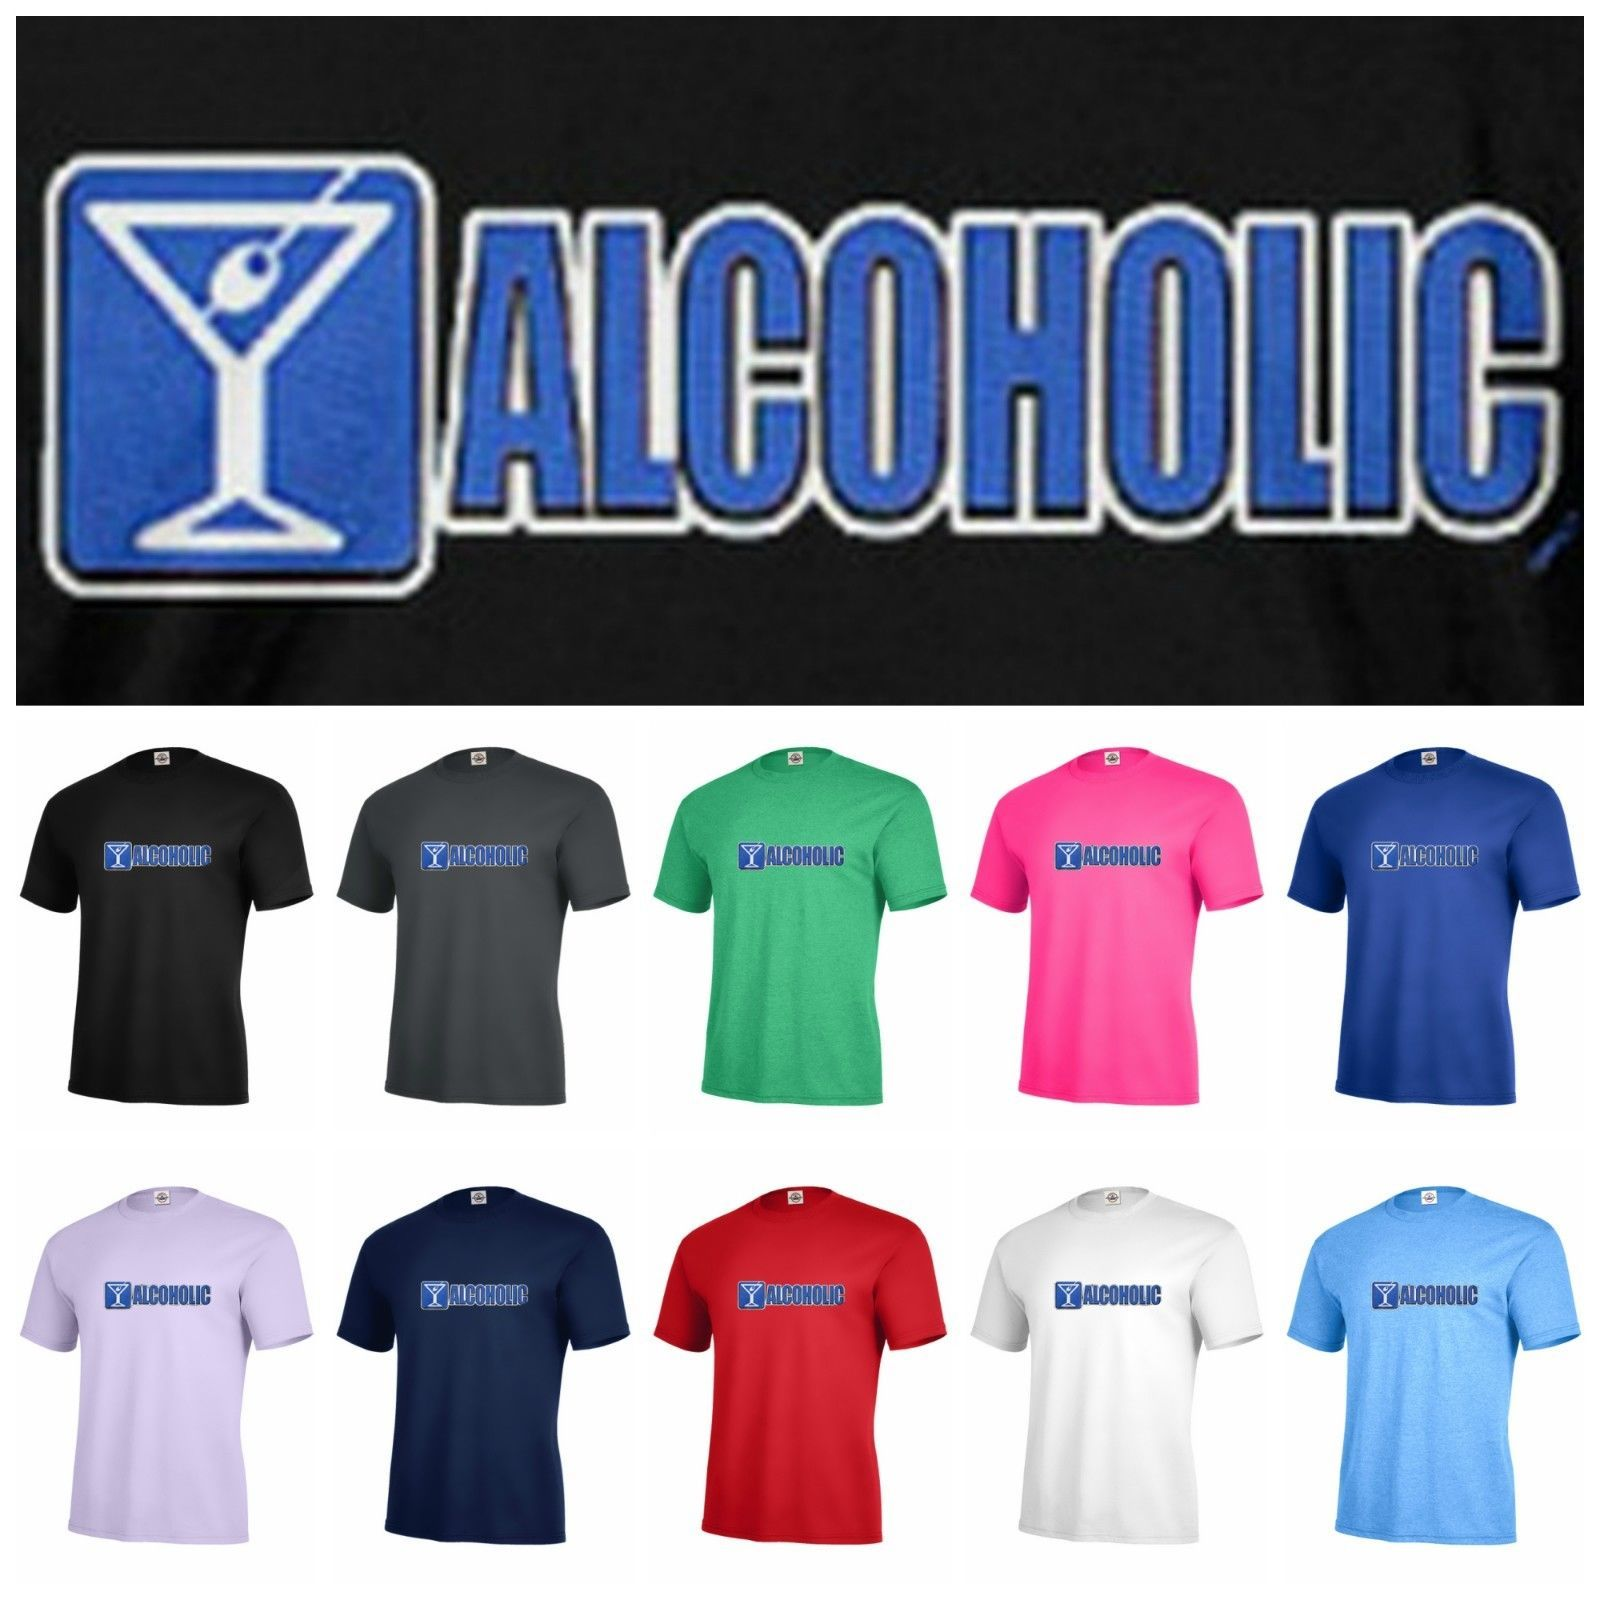 92c25b4e ALCOHOLIC sighn party humor T-shirt Adult and similar items. S l1600